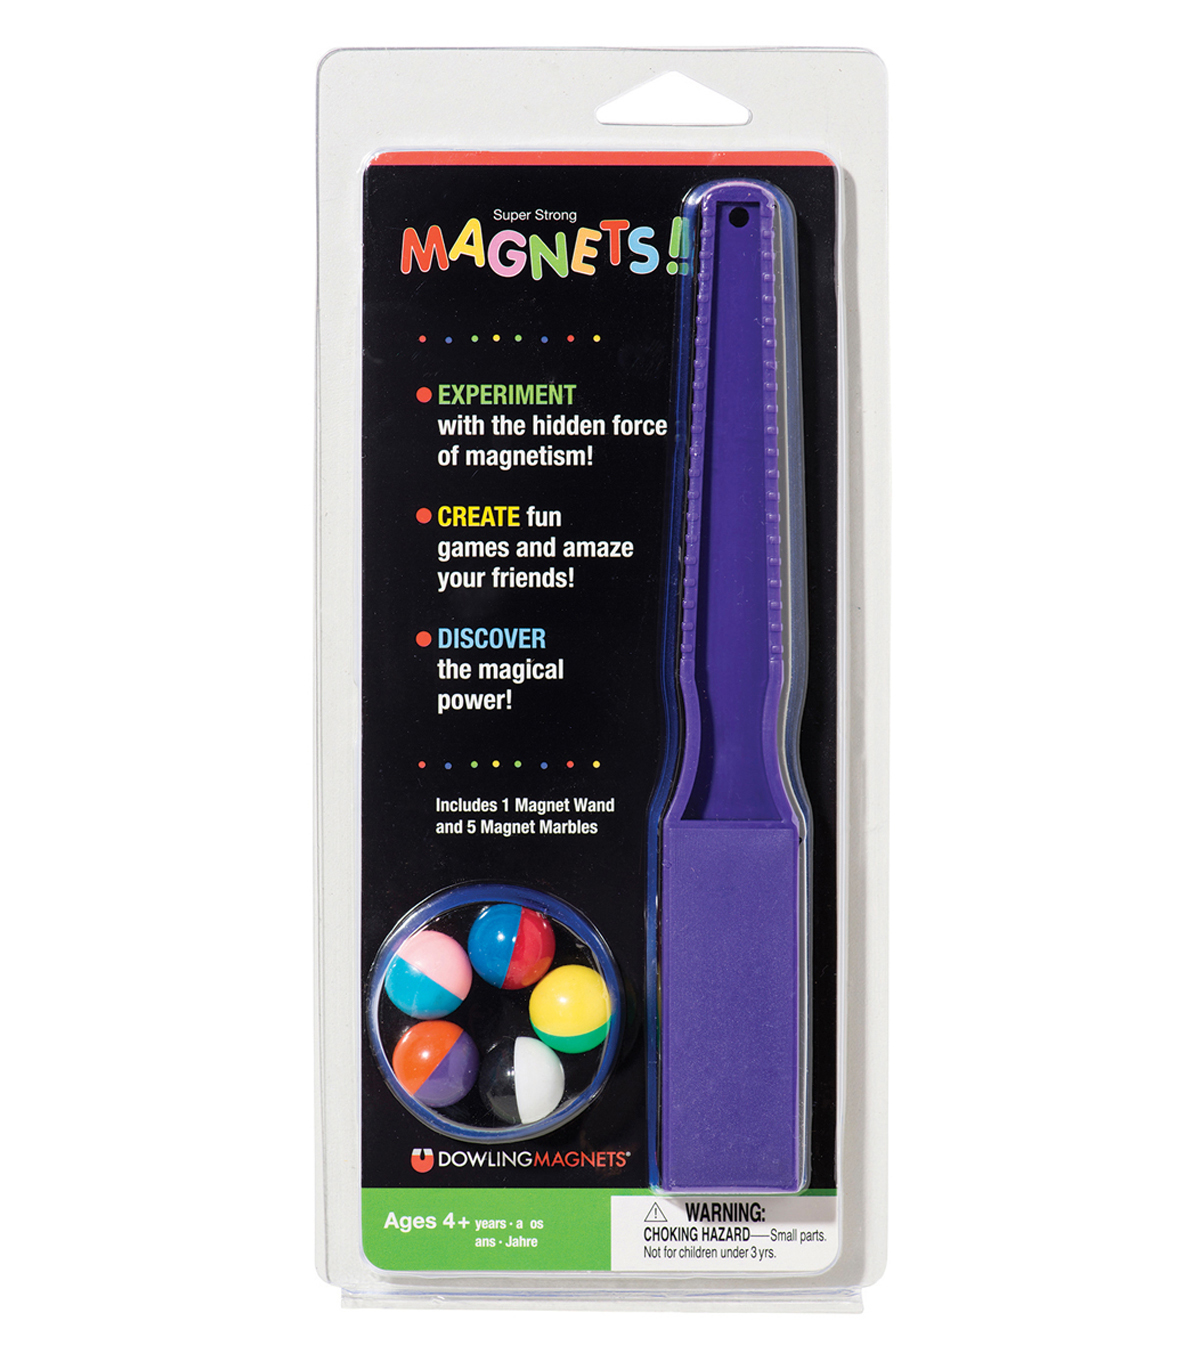 Magnet Wand And 5 Magnet Marbles Set, 6 Sets